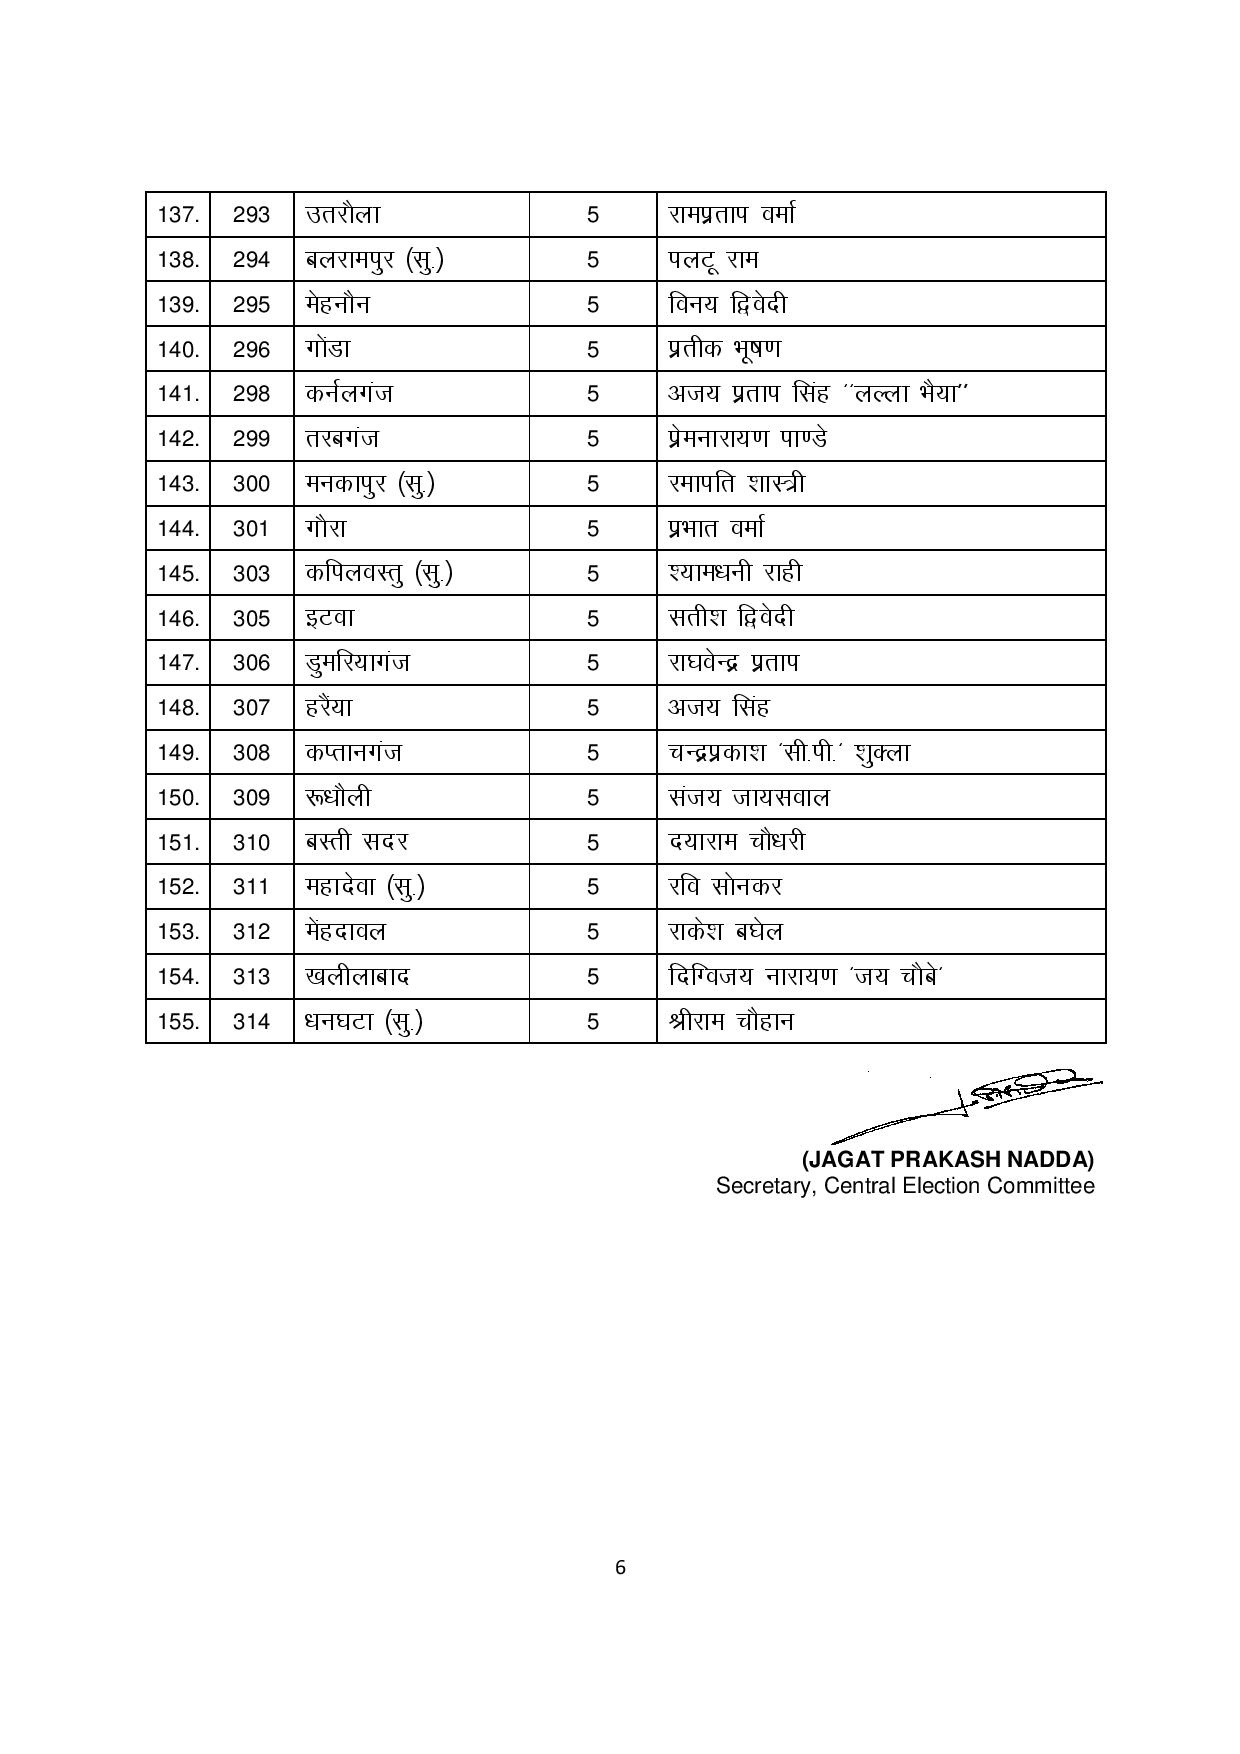 bjp second list of candidates